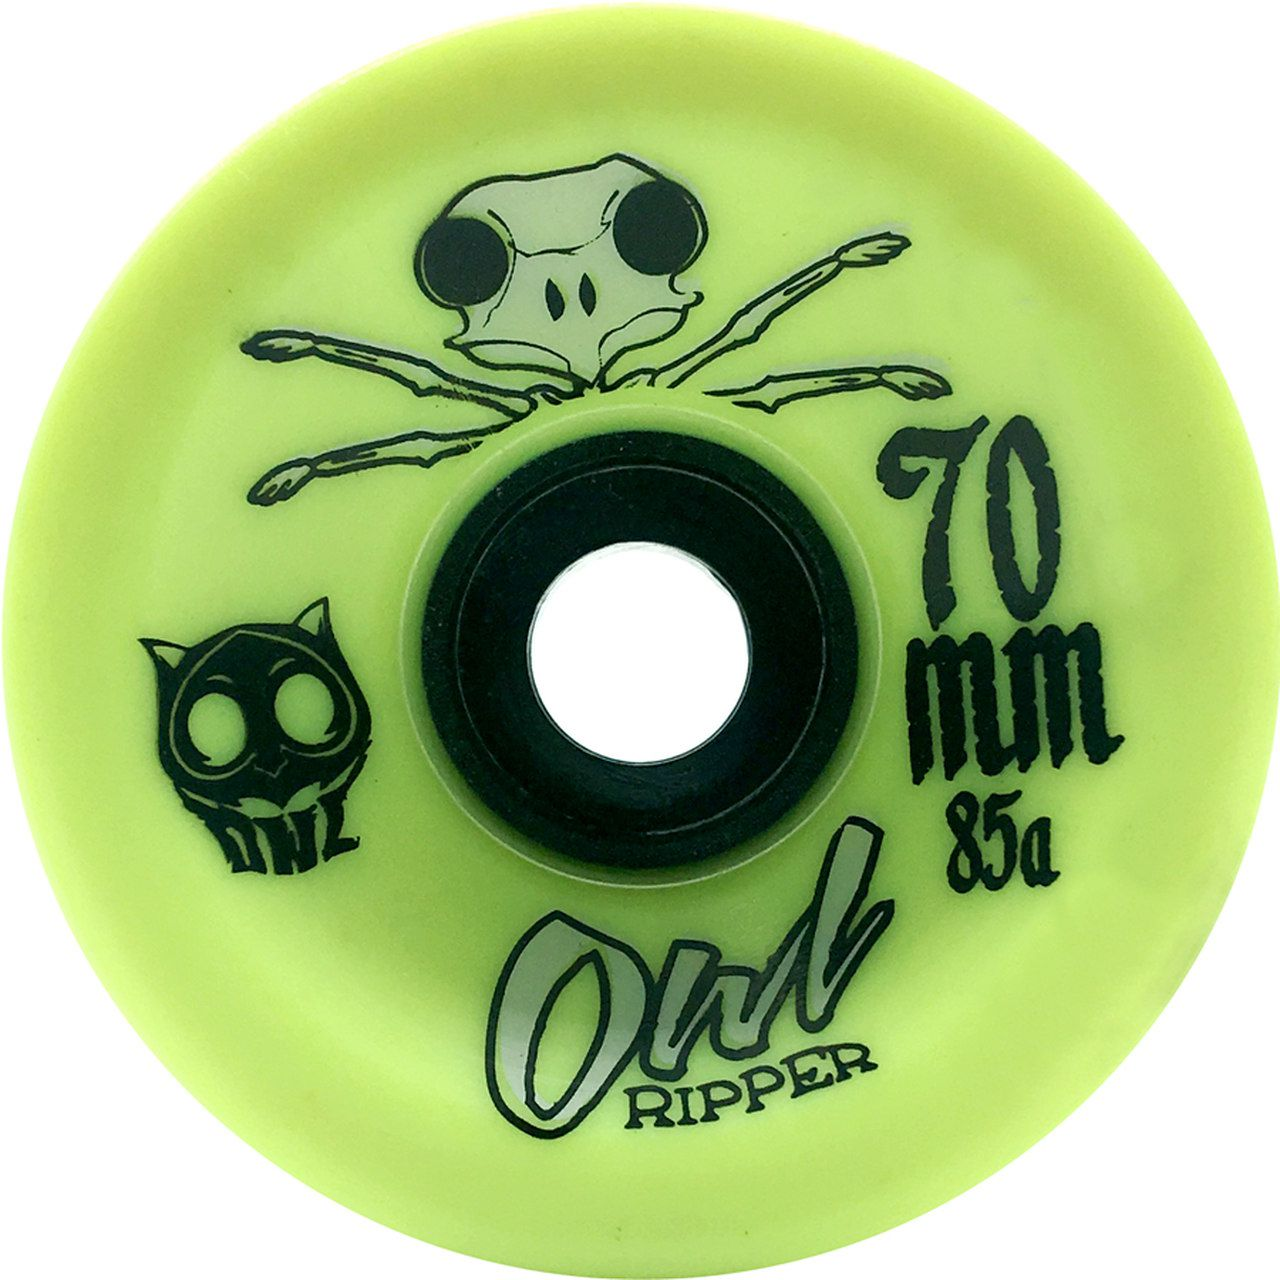 Roda De Longboard Owl Sports Ripper 70mm